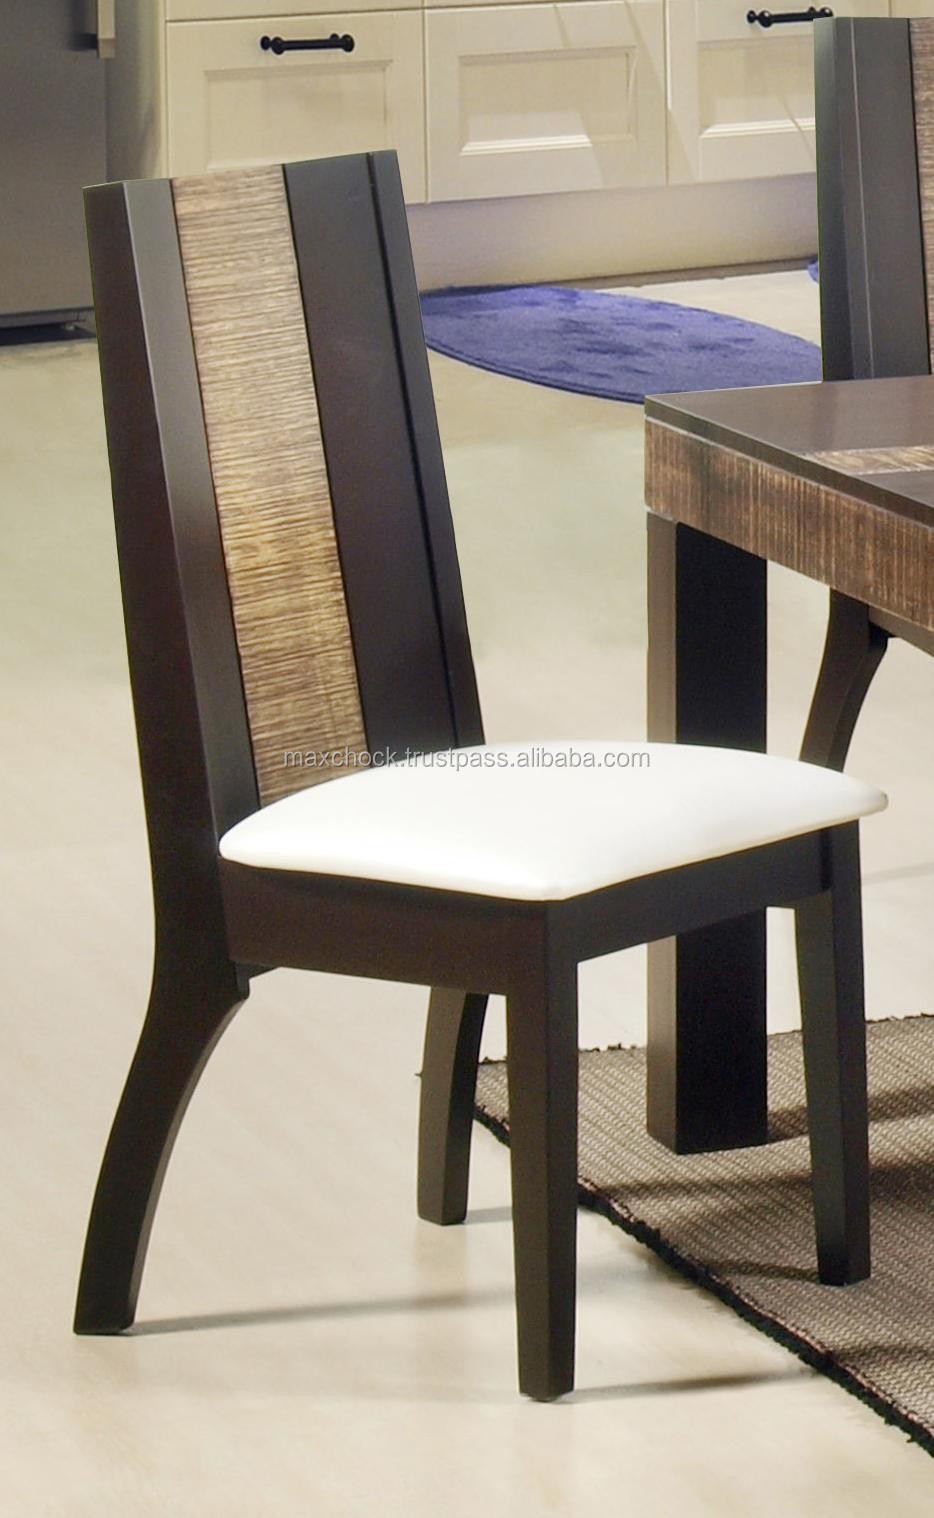 BALI rustic solid wood dining table & chairs